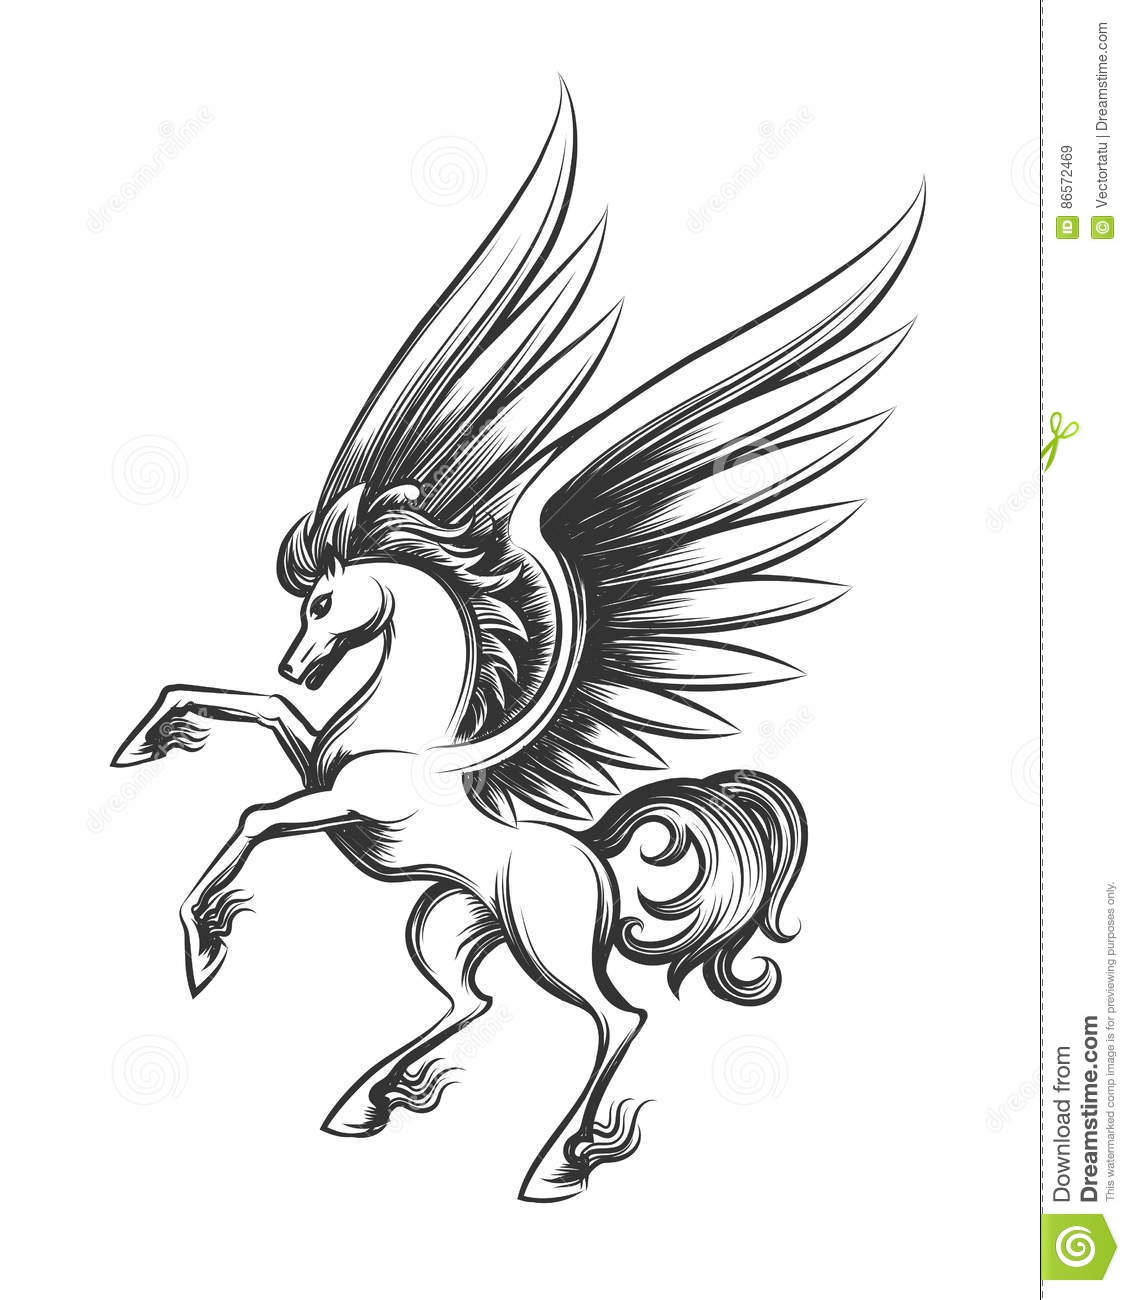 Winged Horse Engraving Illustration Stock Vector Illustration Of Isolated Decoration 86572469